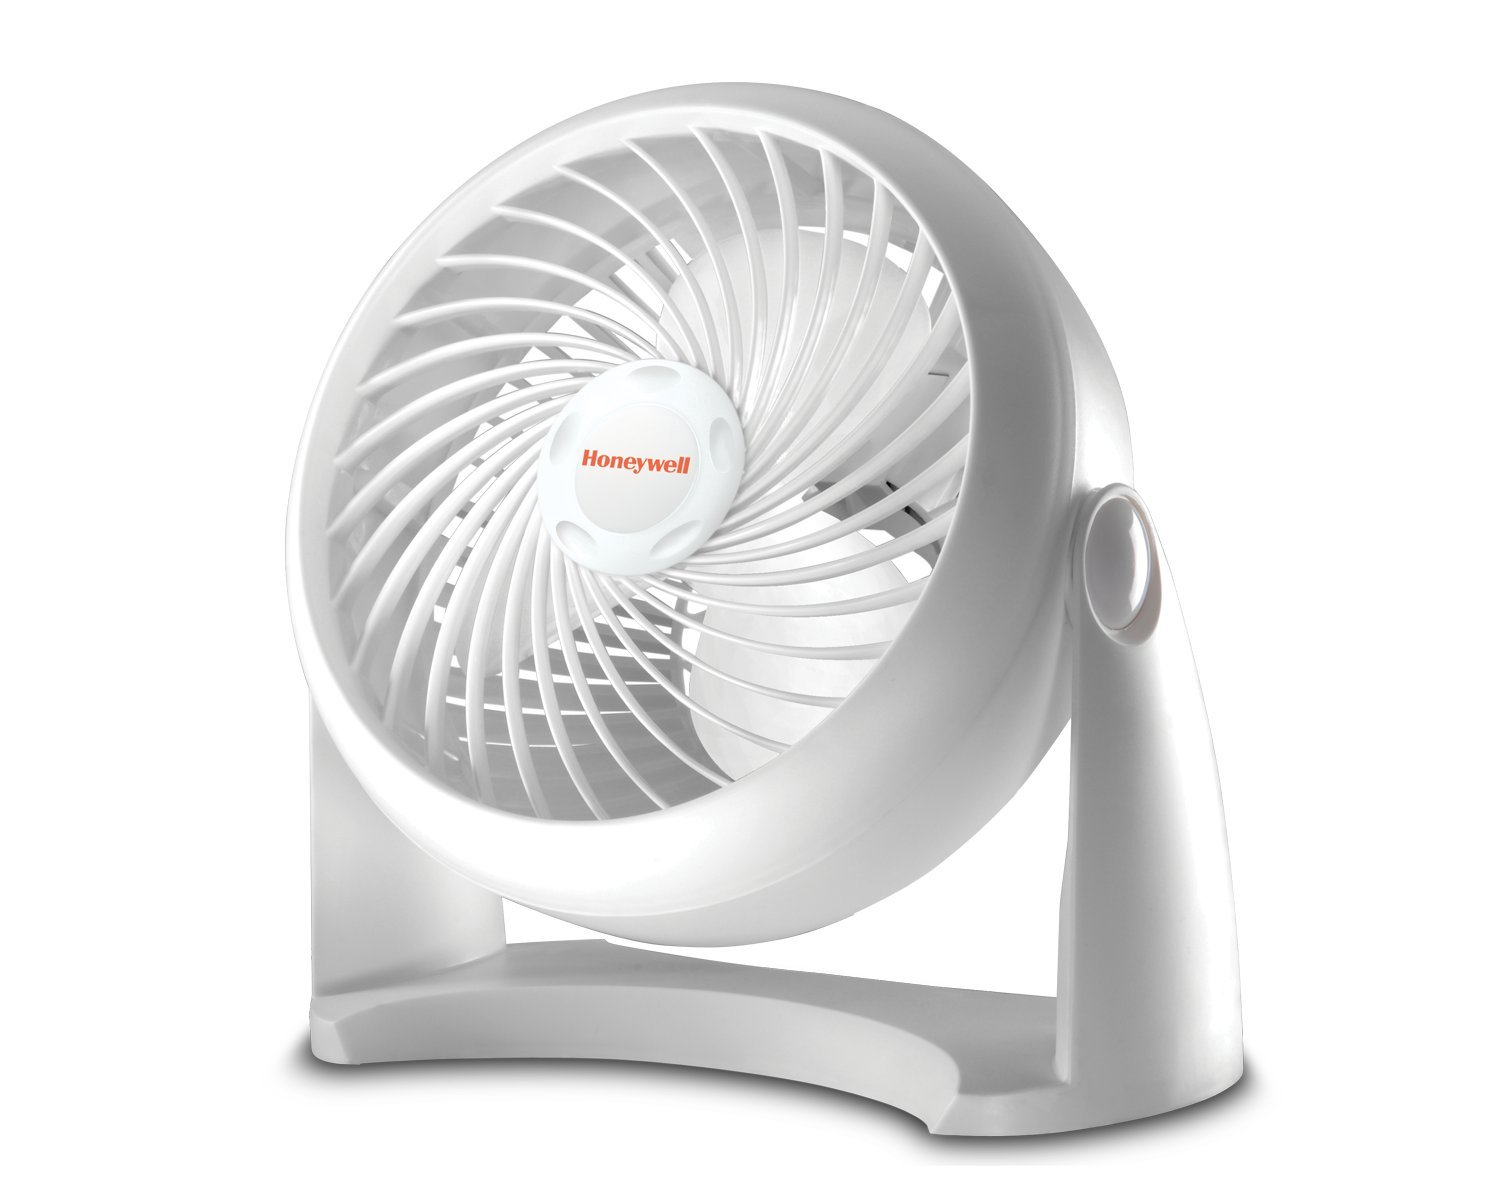 Honeywell HT-904 Tabletop Air-Circulator Fan, White, 11 inch by Honeywell